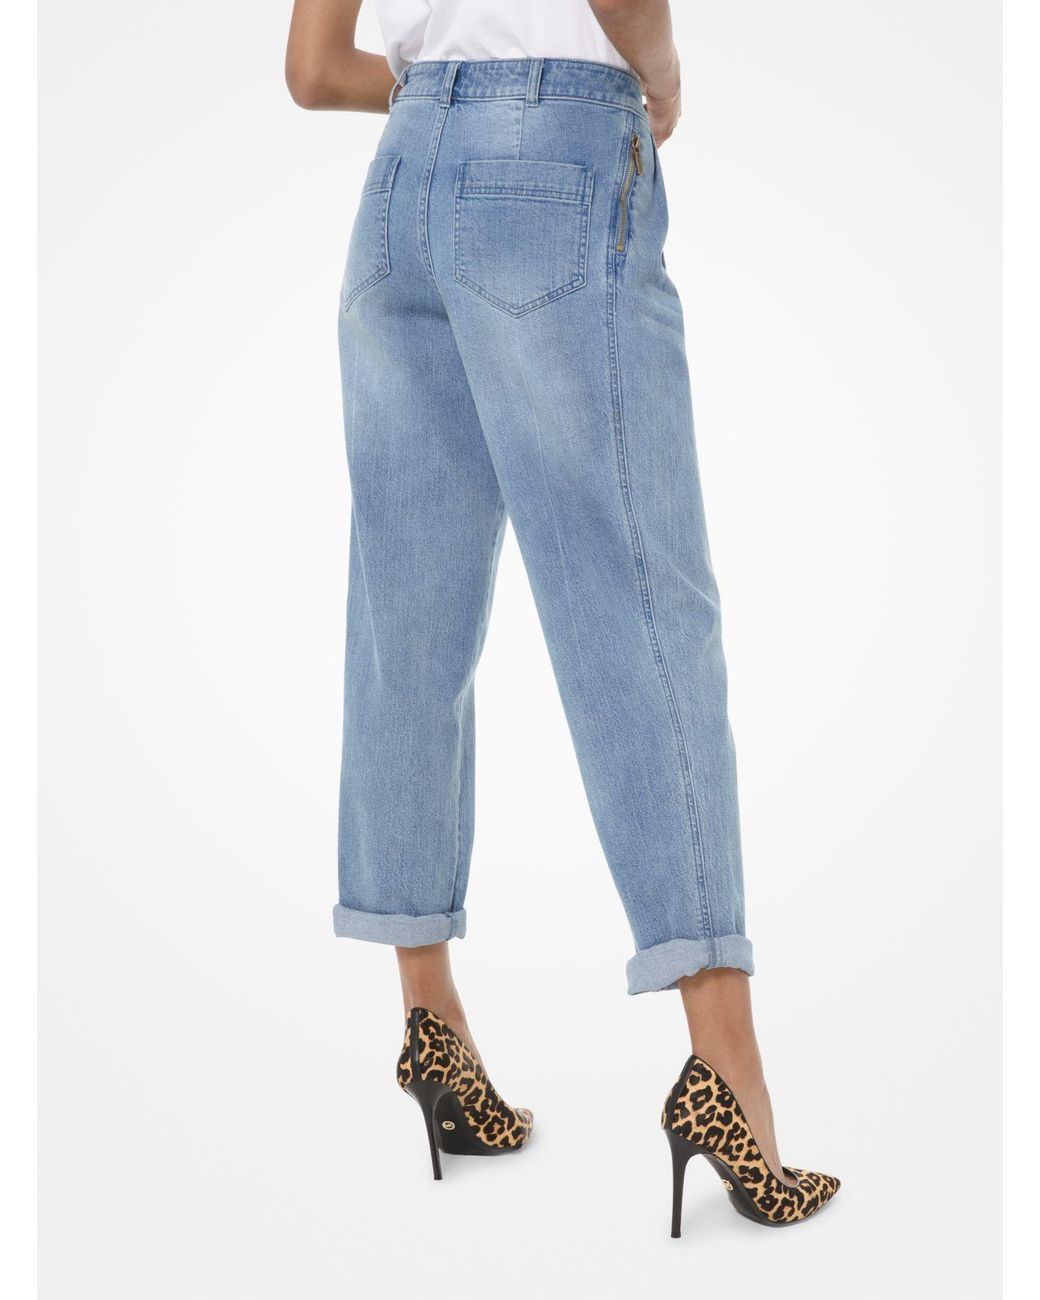 Pandapang Women Denim Simple Trousers Jeans Ripped Slim Fit Stretch Overalls